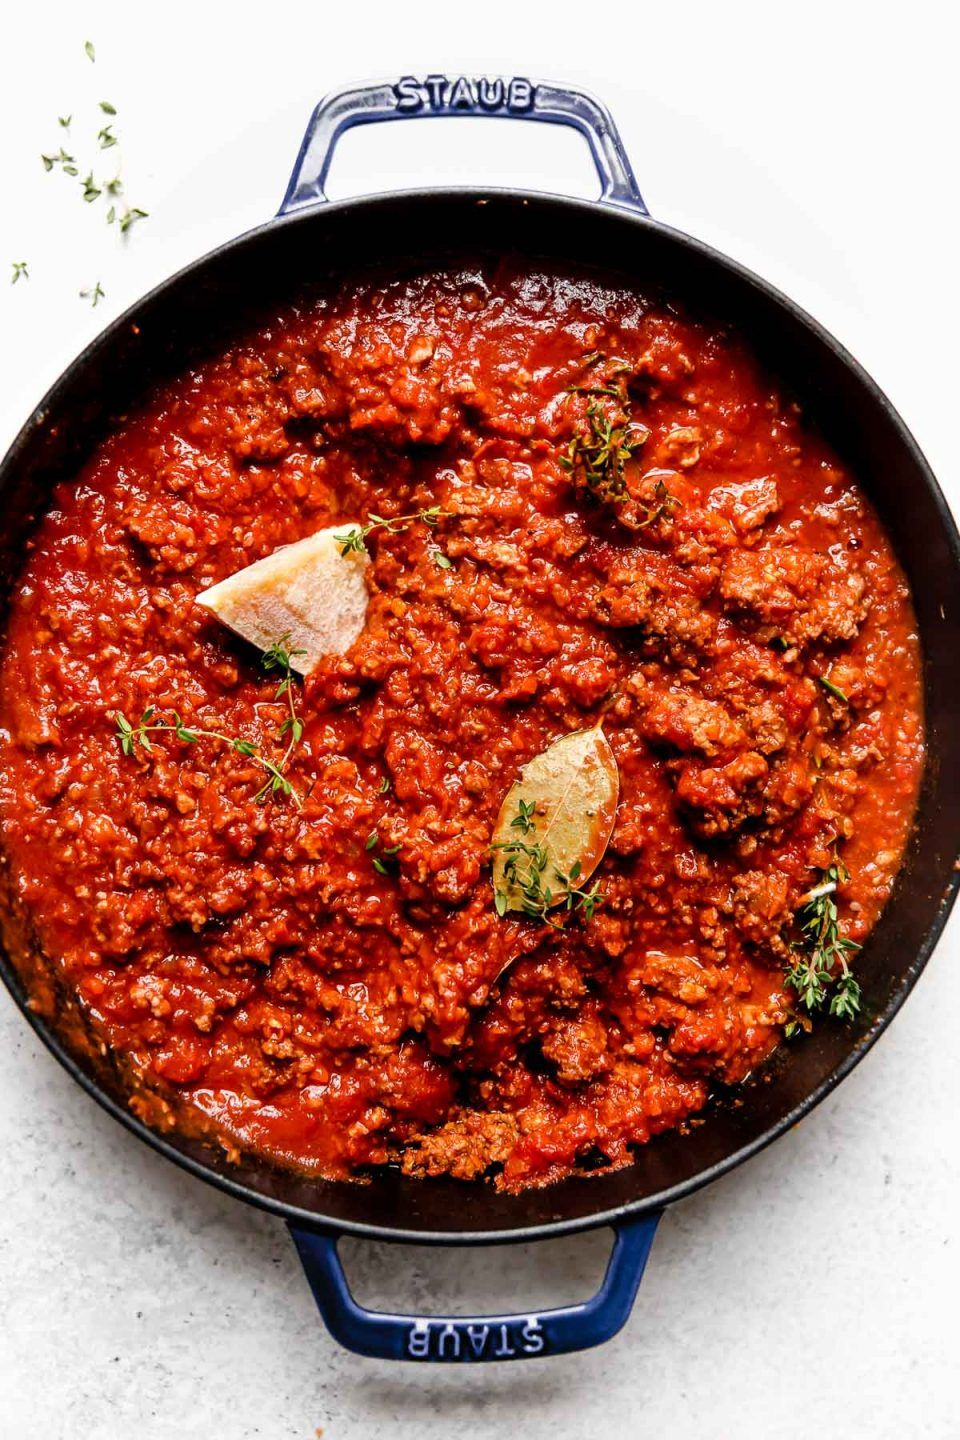 Best Ever Bolognese Sauce Recipe Stovetop Slow Cooker Instant Pot Recipe In 2020 Recipes Pasta Dishes Bolognese Sauce Recipe